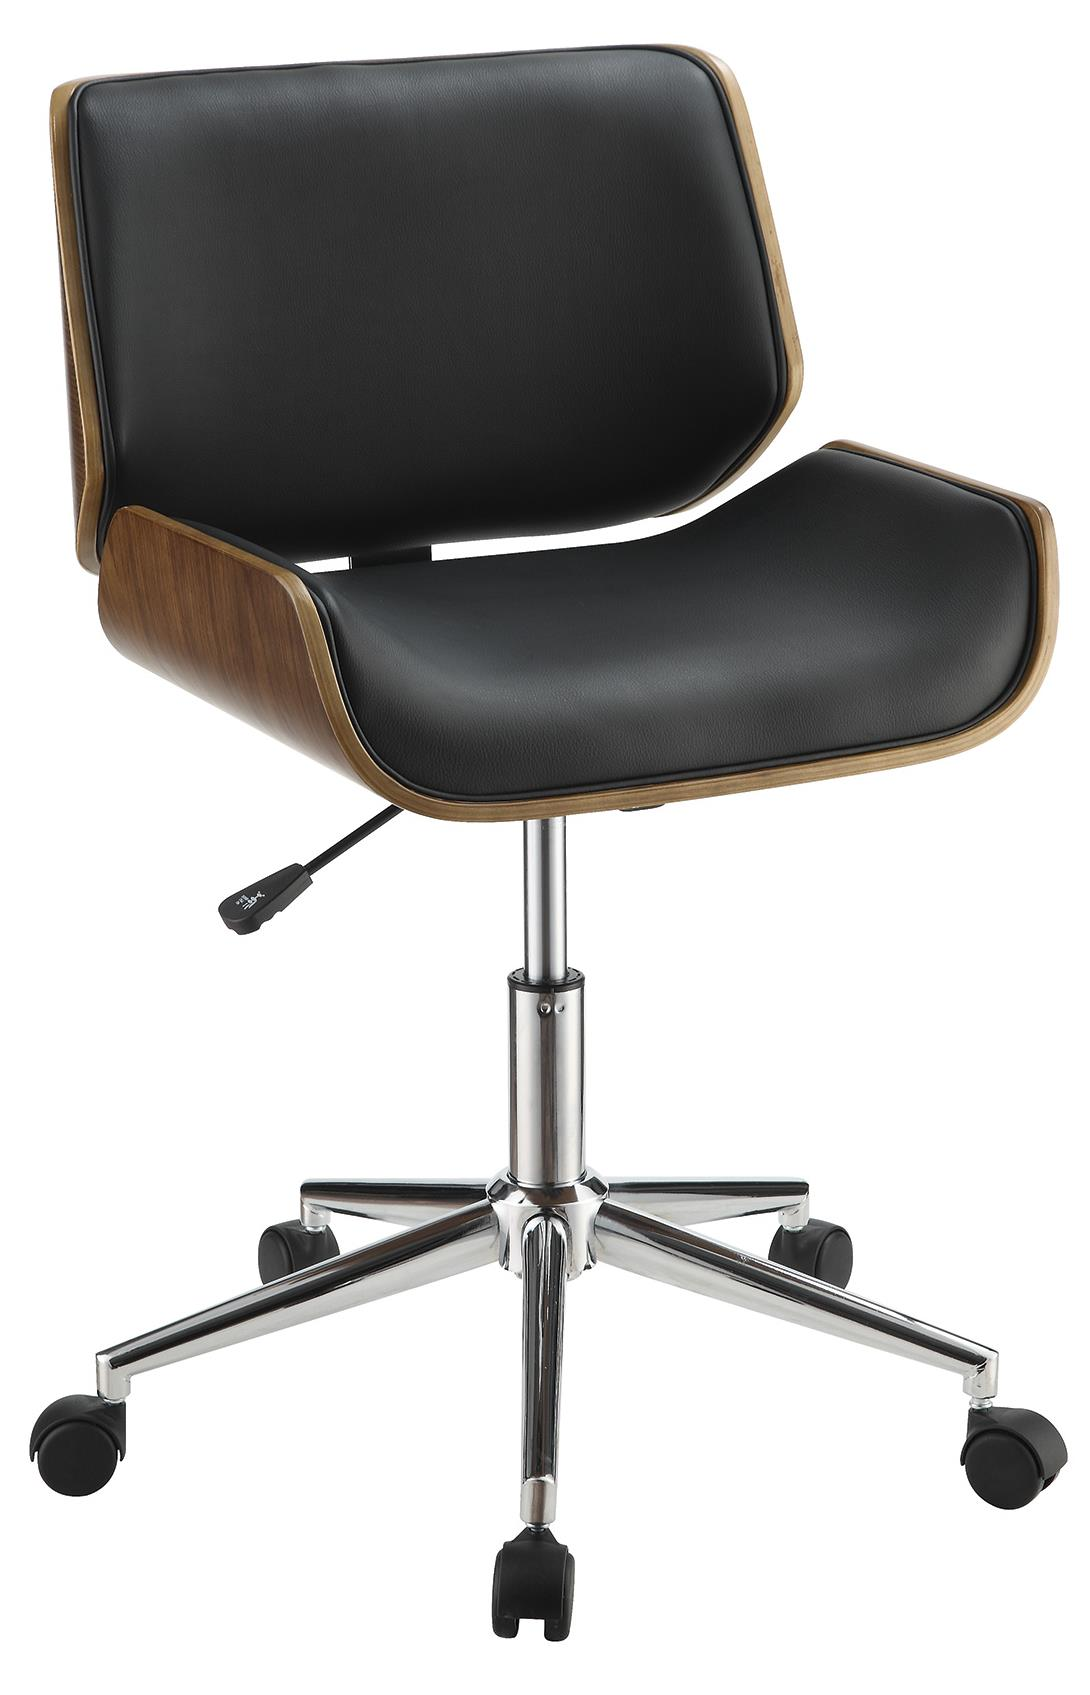 products_coaster_color_office chairs_800612-b1